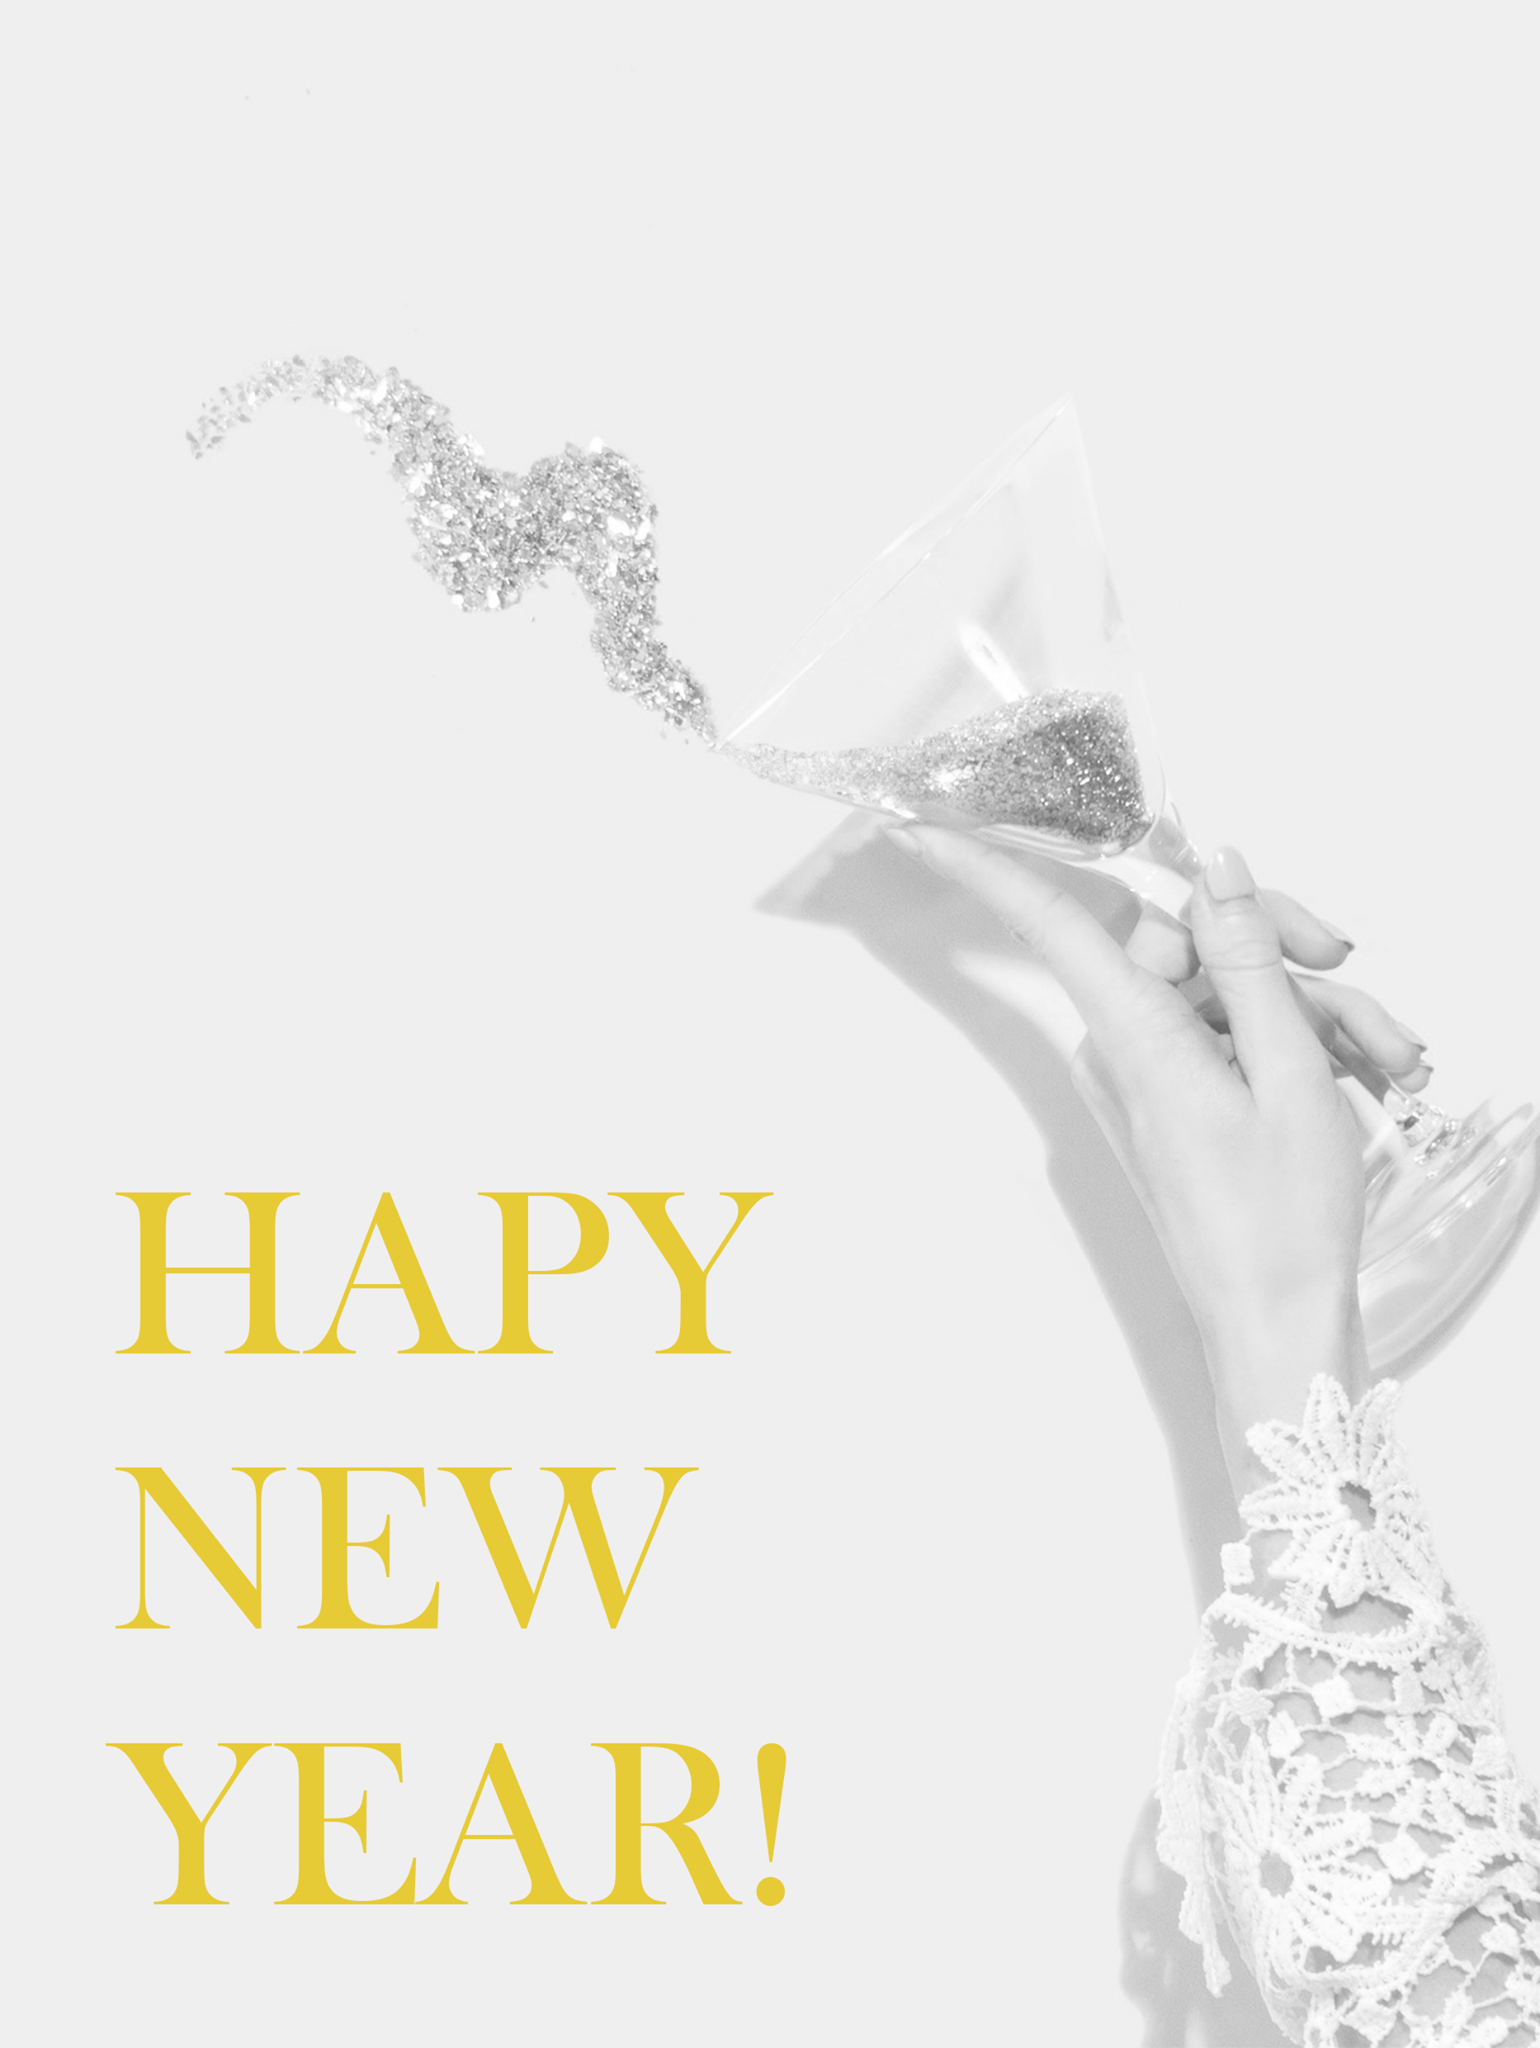 From our Advanced Cosmeceuticals family, we wish you a wonderful New Year. We th...